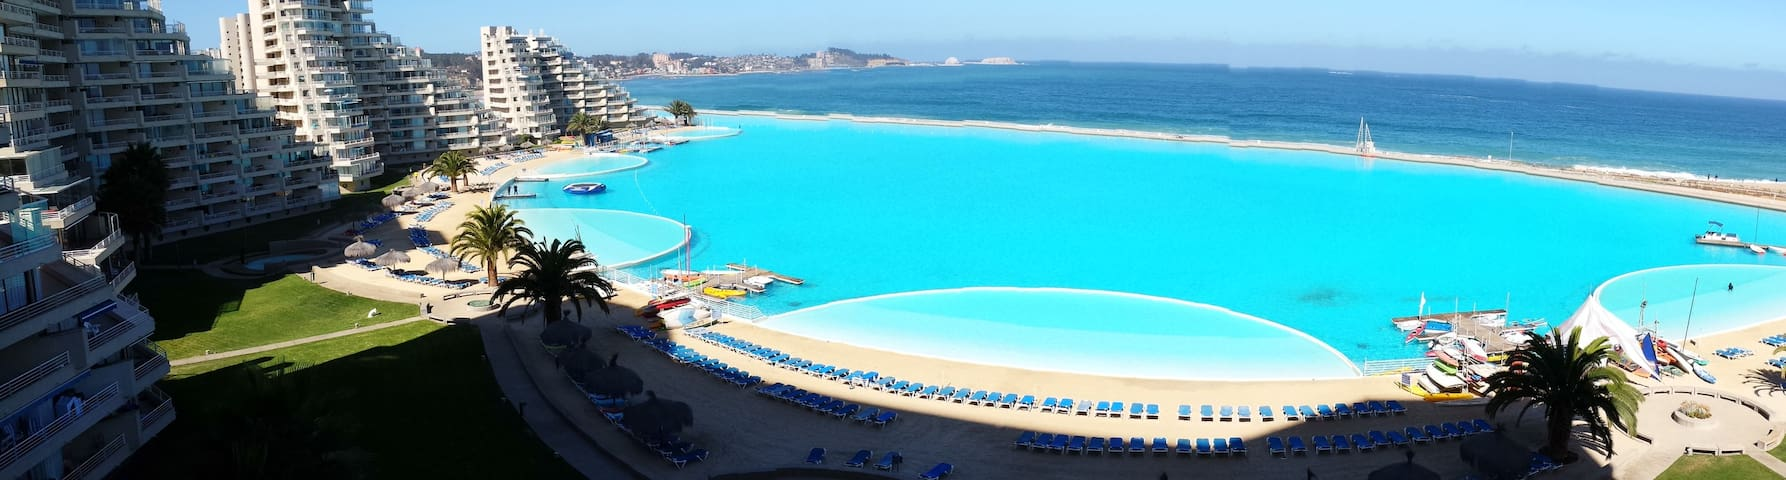 RESORT SAN ALFONSO DEL MAR - Algarrobo - Pis